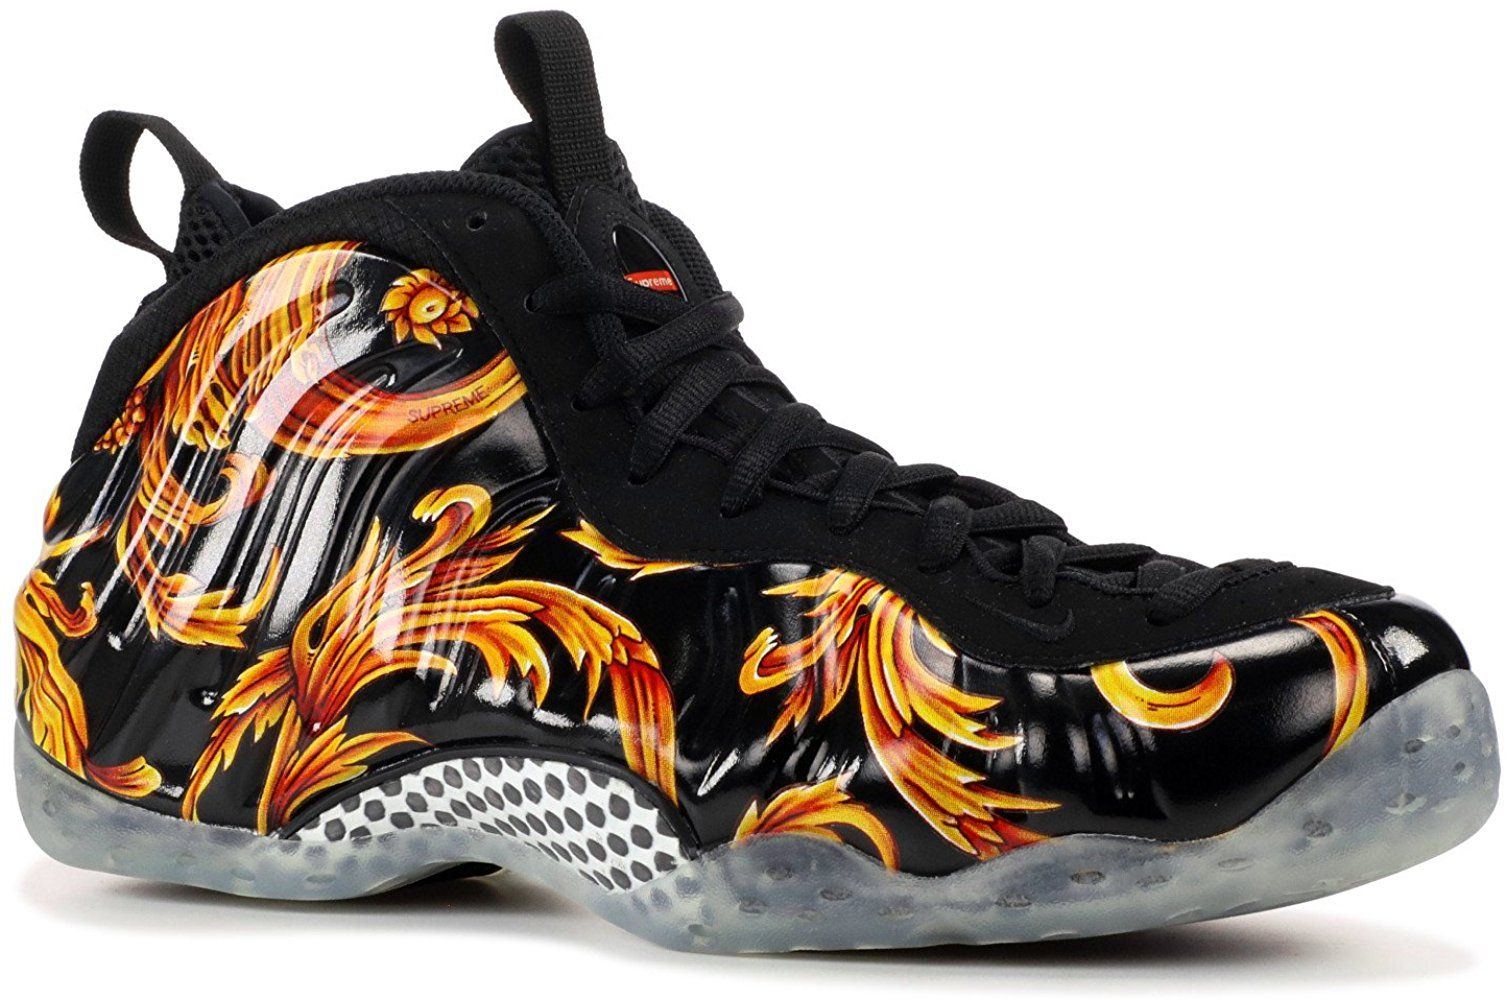 Nike Air Foamposite One Releasing In Reflective Mini Swoosh?